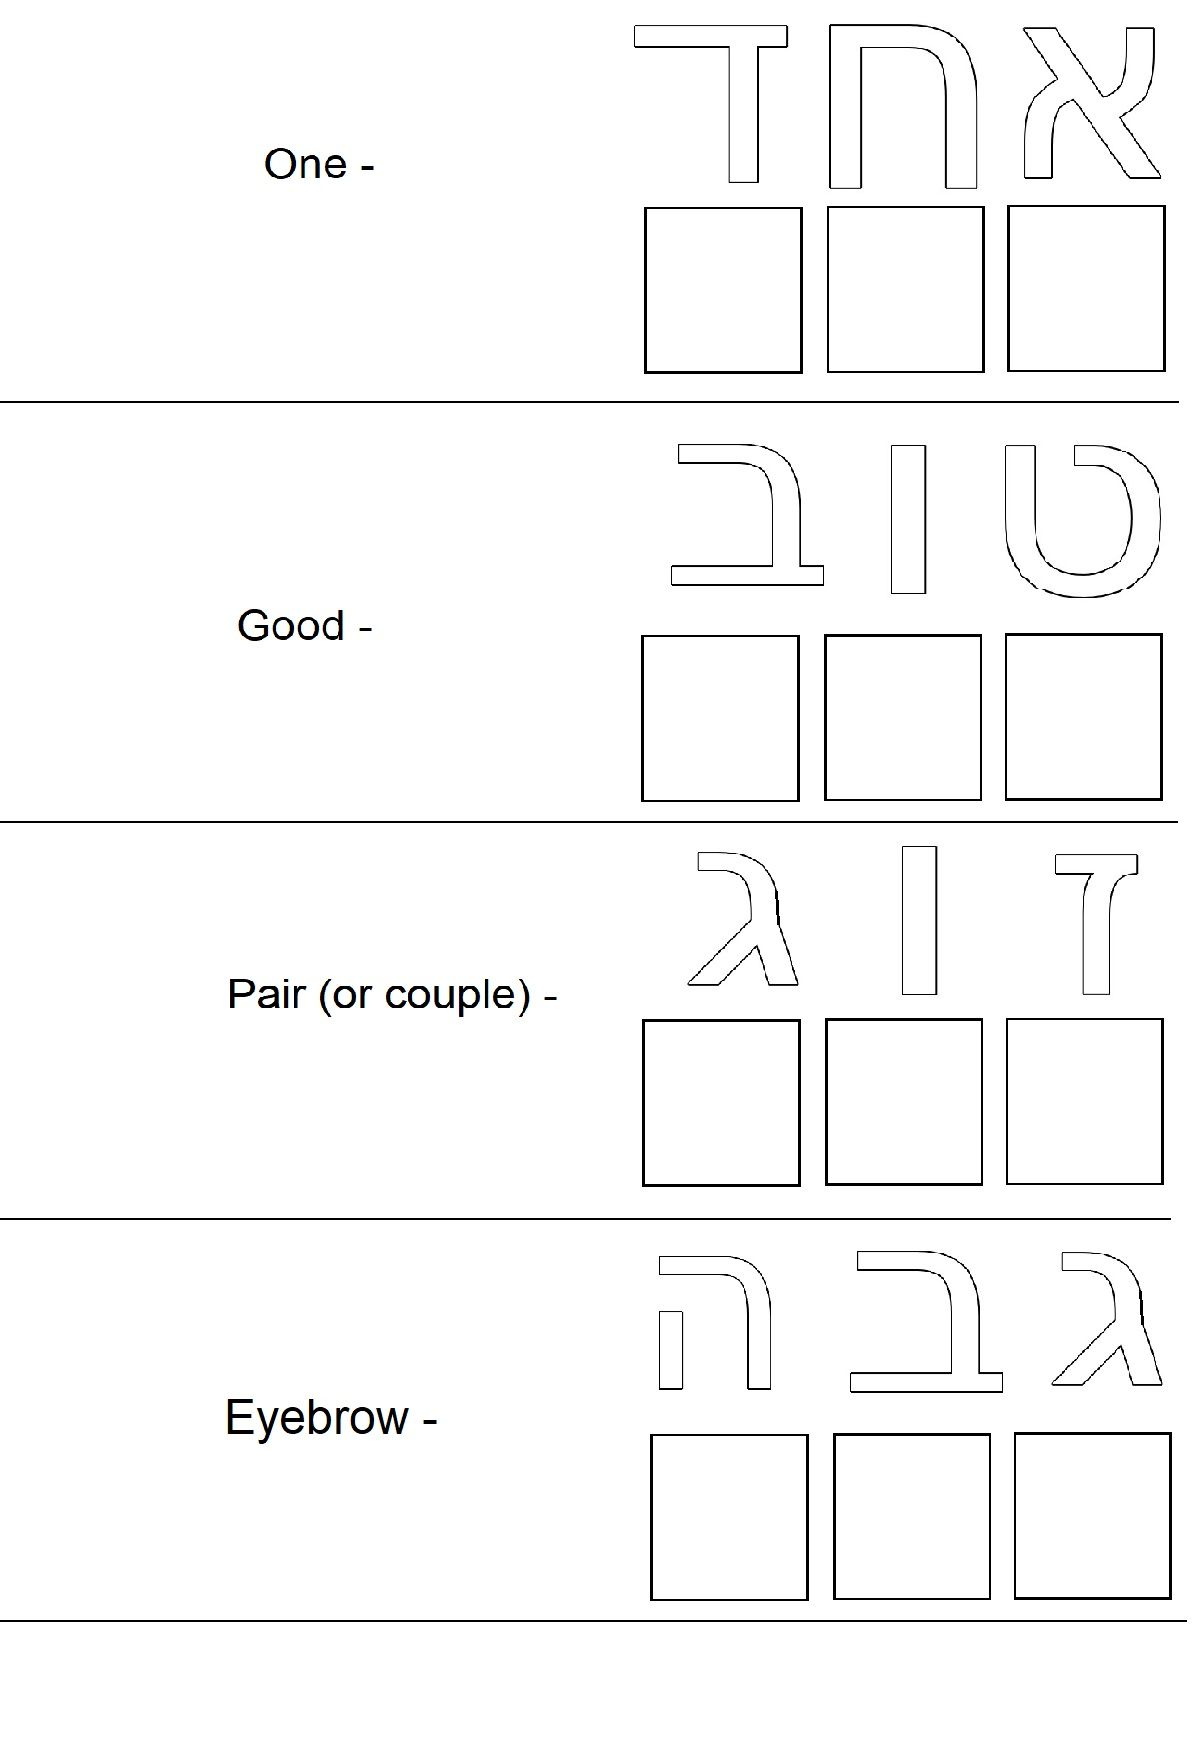 How To Write Script Letters In Hebrew